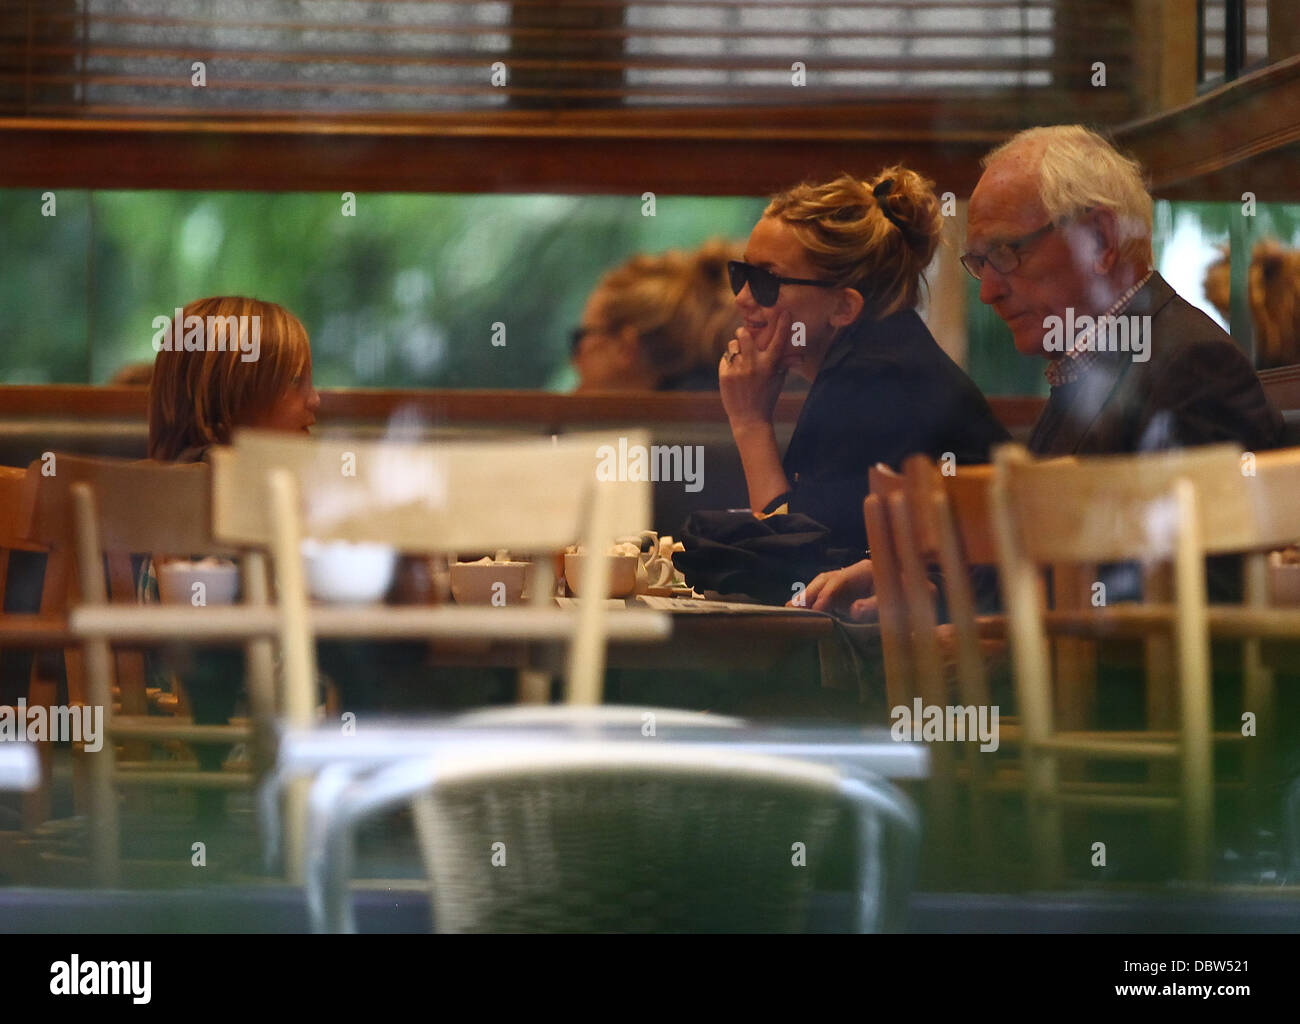 Kate Hudson And Her Son Ryder Drink Coffee And Eat Cake In A Cafe In Stock Photo Alamy